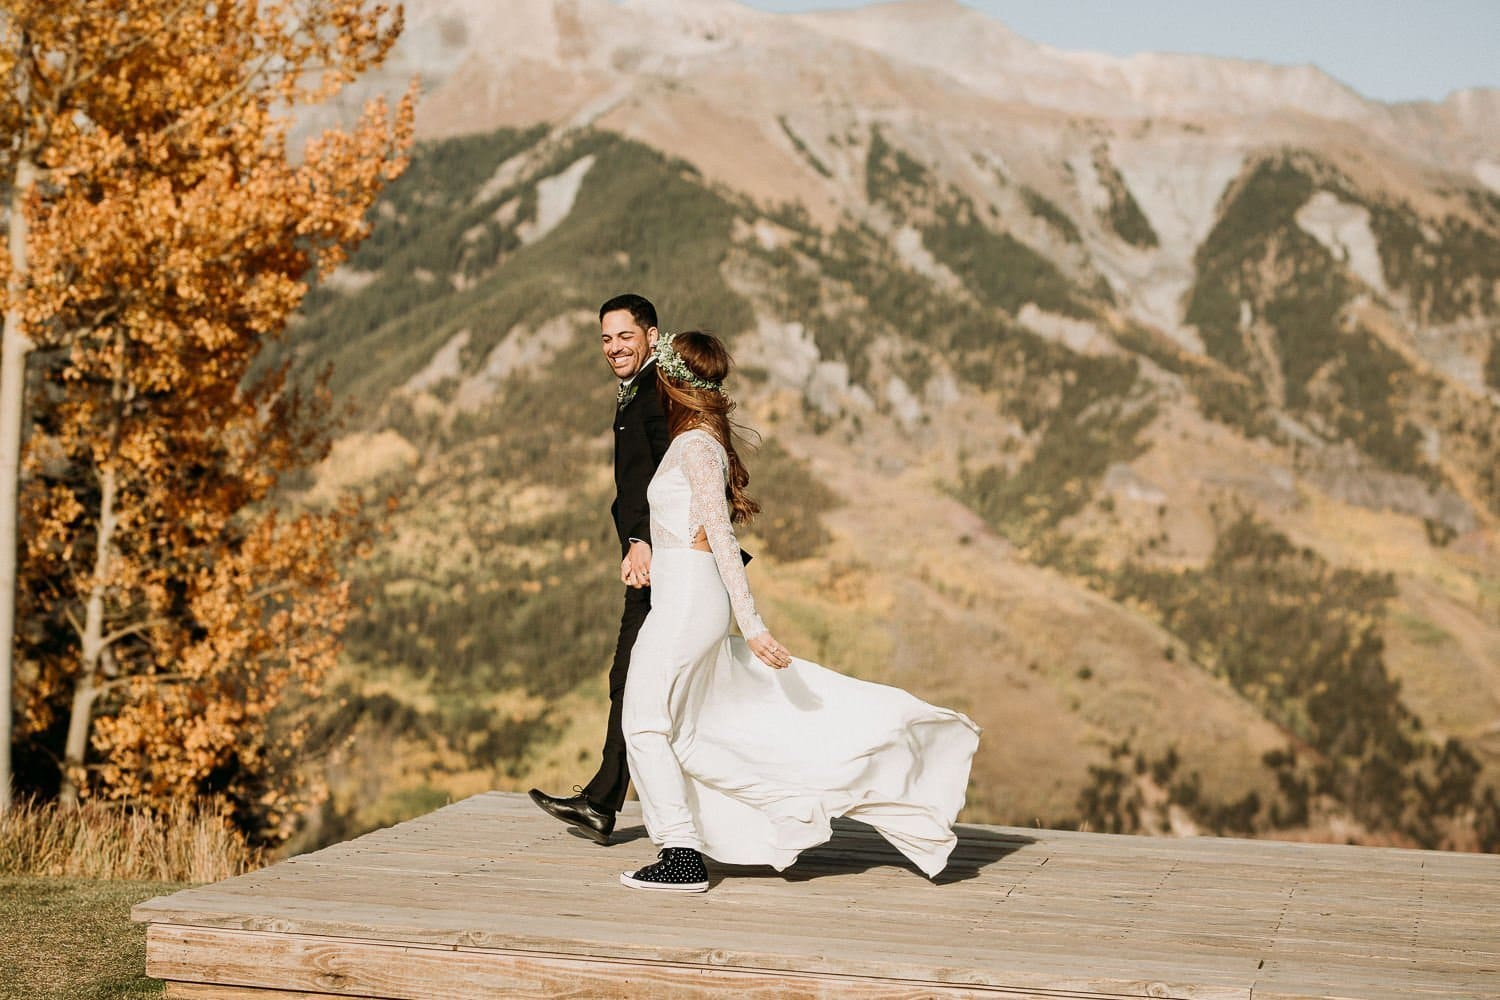 APRIL+ DEREK'S ADVENTURE INTIMATE WEDDING | DESTINATION WEDDING PHOTOGRAPHER|TELLURIDE COLORADO ELOPEMENT PHOTOGRAPHER | SAN SOPHIA OVERLOOK INTIMATE WEDDING|COLORADO MOUNTAIN INTIMATE WEDDING |SAN JUAN MOUNTAINS WEDDING PHOTOGRAPHER COLORADO ADVENTURE PHOTOGRAPHY|COLORADO ELOPEMENT PHOTOGRAPHER|DESTINATION ADVENTURE ELOPEMENTS + INTIMATE WEDDINGS FOR MADLY IN LOVE SOULS| ROCKY MOUNTAIN NATIONAL PARK COLORADO ELOPEMENT PHOTOGRAPHER